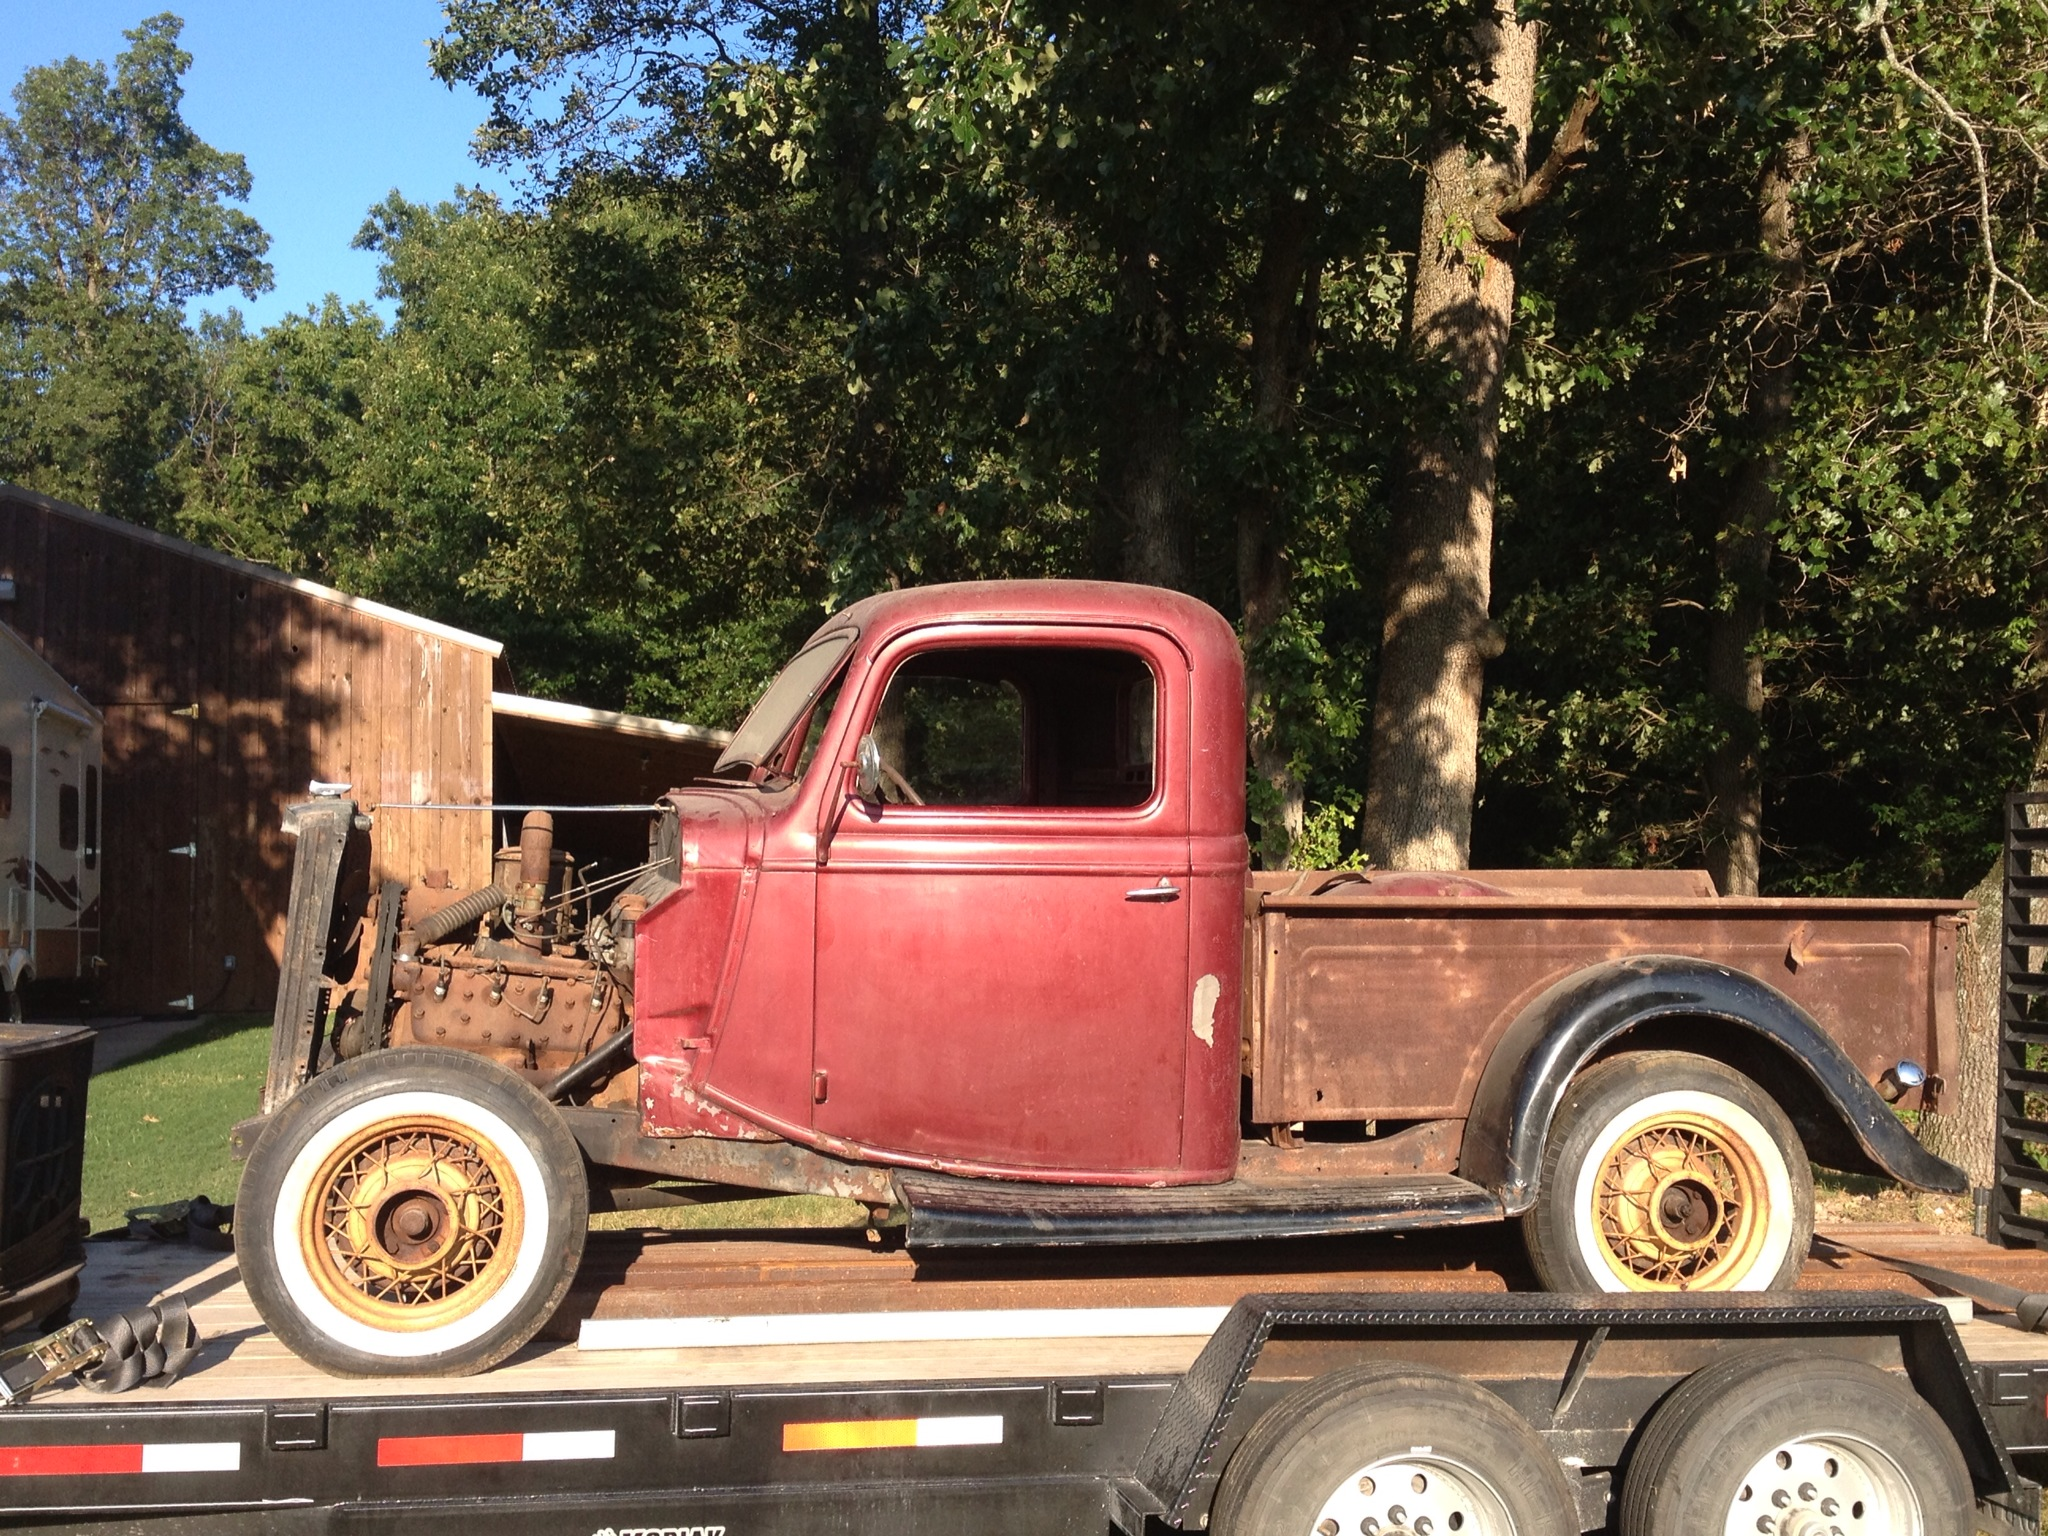 Projects - 1936 Ford Pickup truck build | The H.A.M.B.